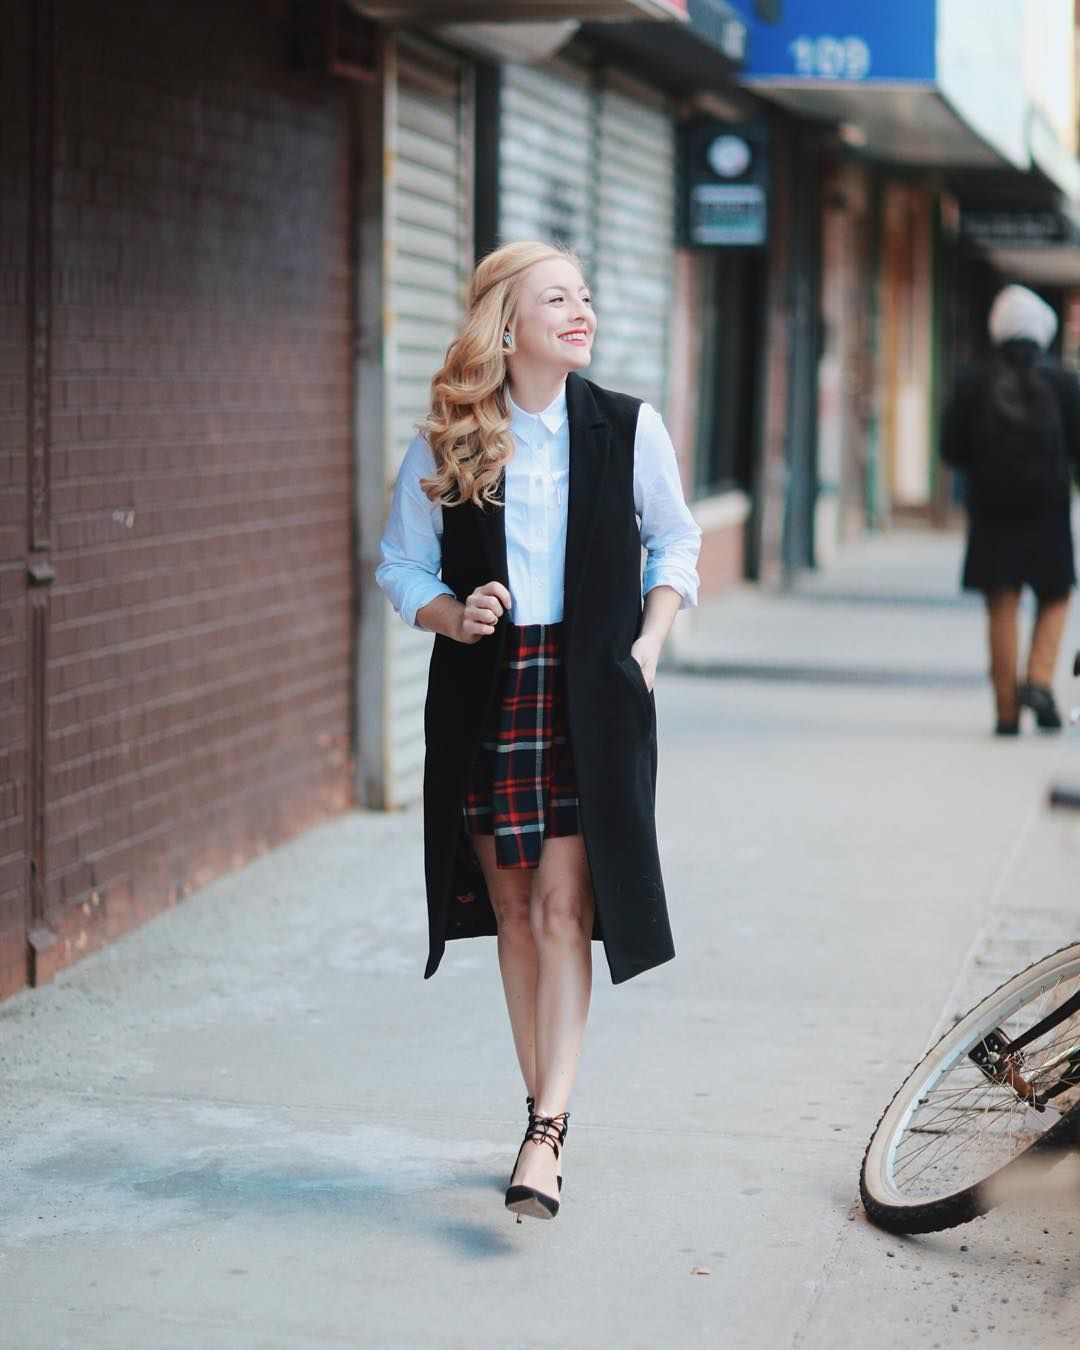 After hating wearing a catholic school uniform for so long I surprisingly love to bring back a nod to those plaid days in my outfits #schoolgirlforever  Photo: @christinaemiliephoto